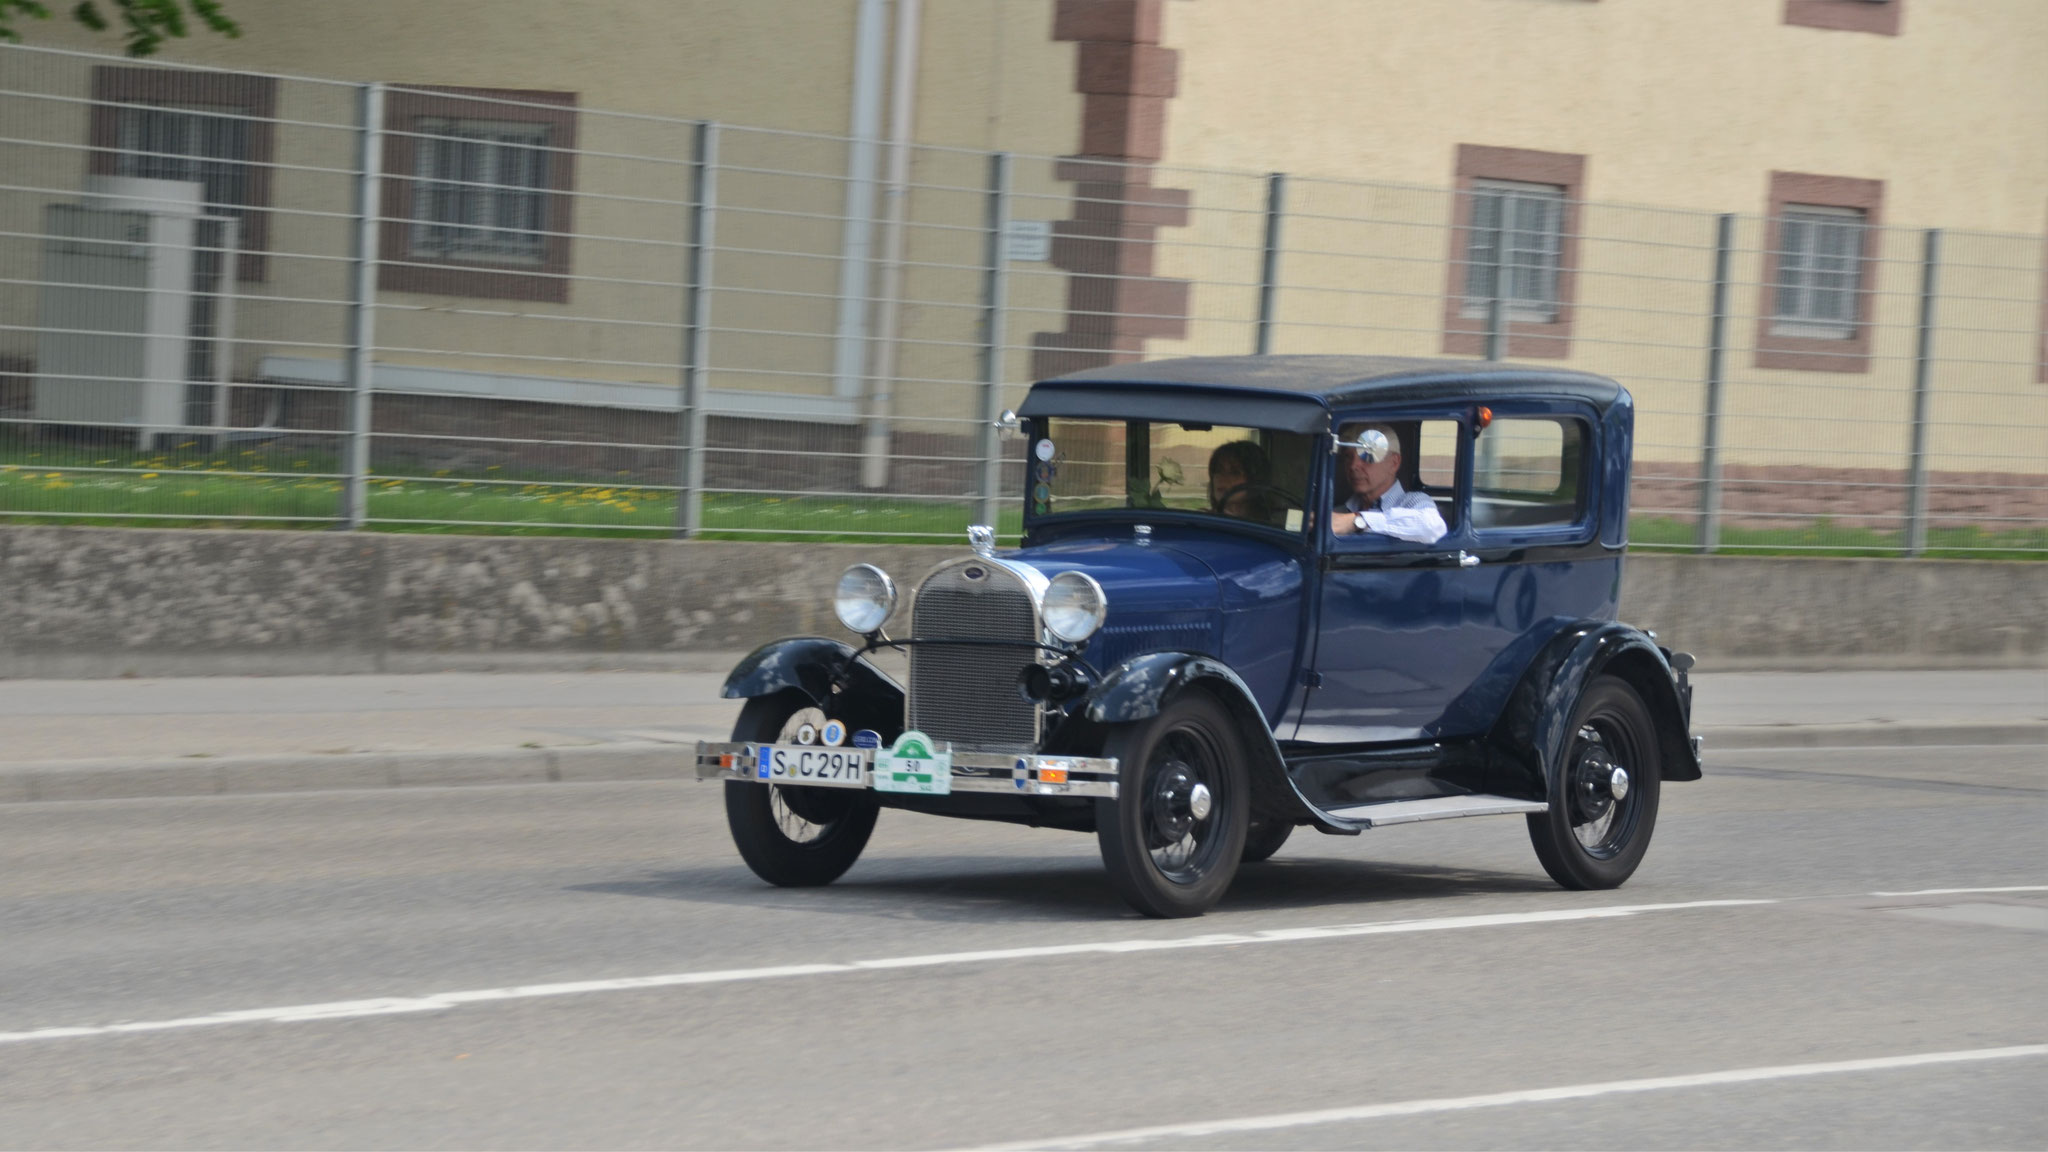 Ford Model A - S-C-29H